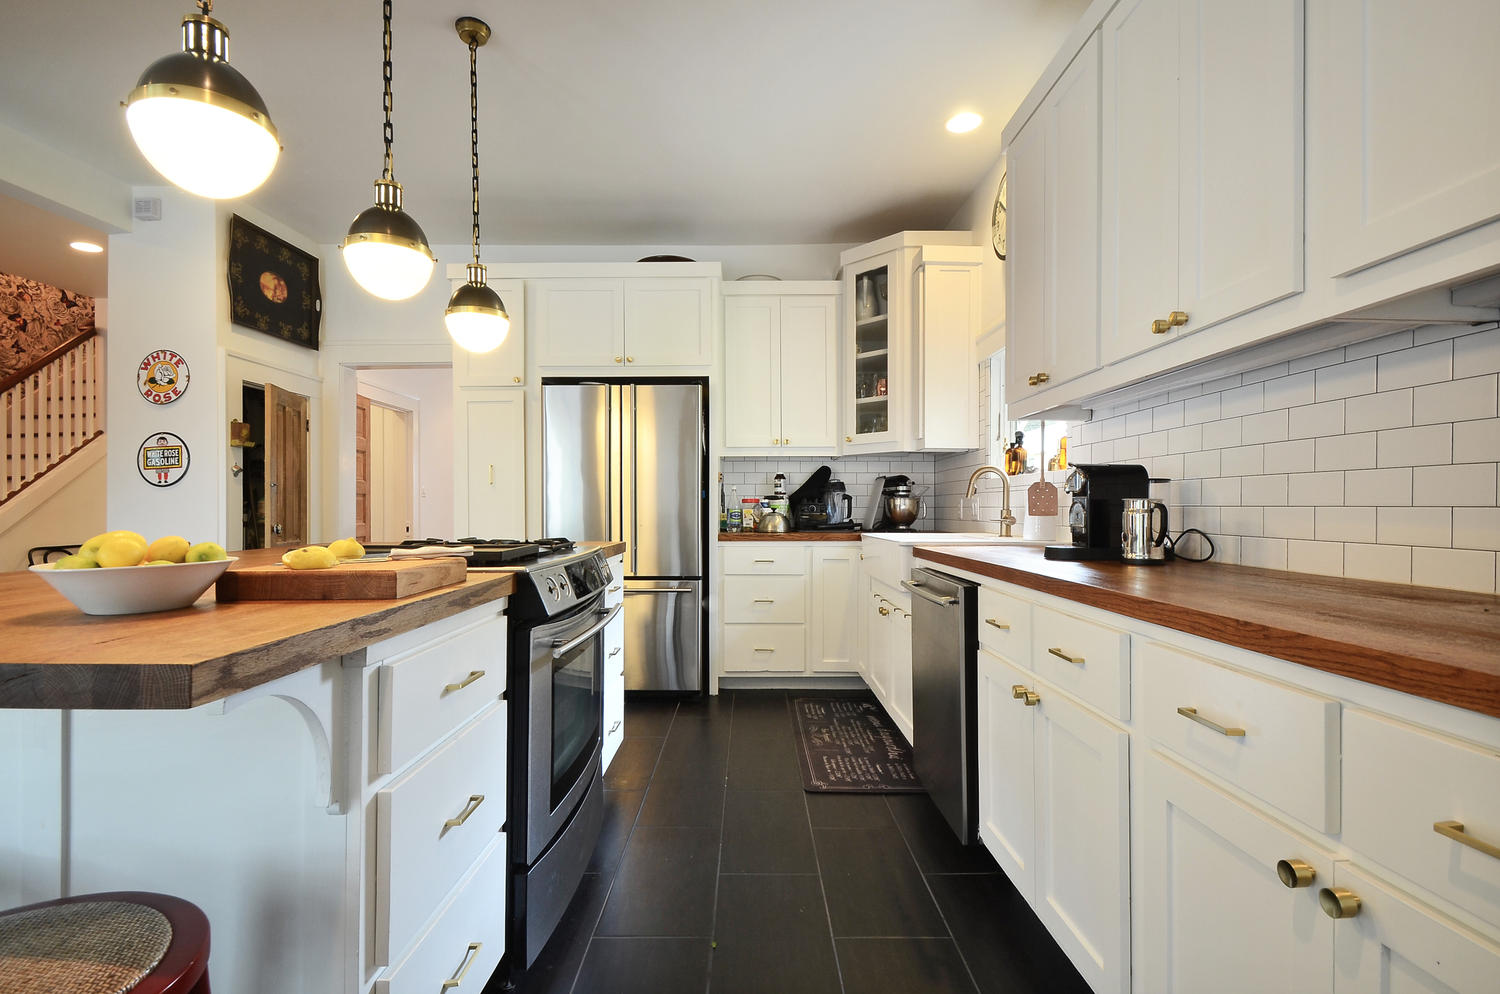 kitchen remodel with white shaker cabinets, gold pulls